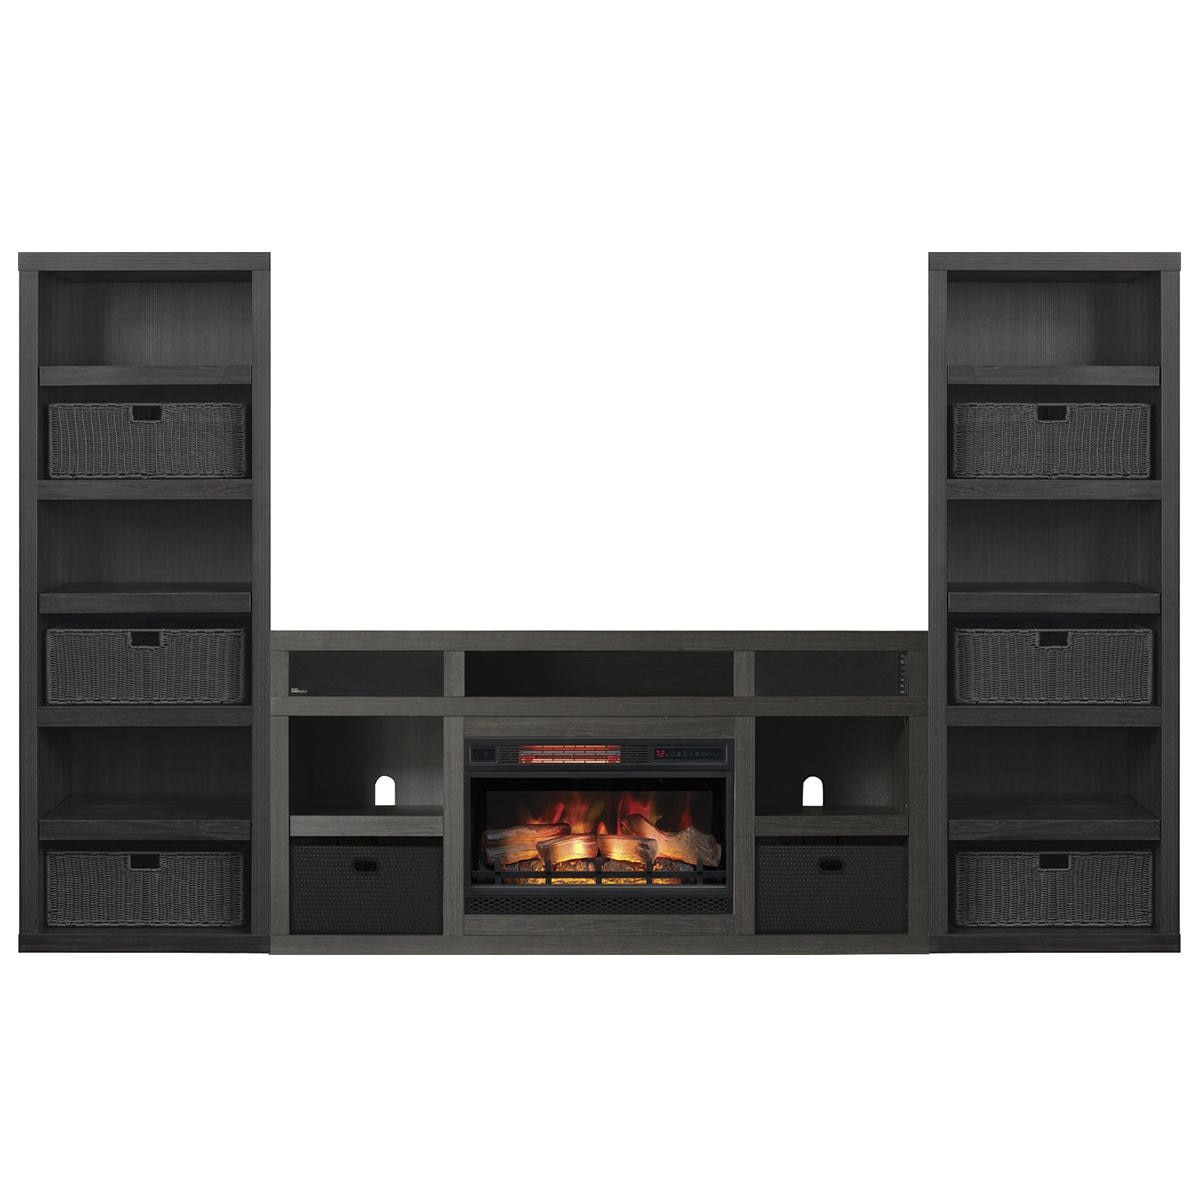 Value City Furniture Fireplace Lovely Fabio Flames Greatlin 3 Piece Fireplace Entertainment Wall